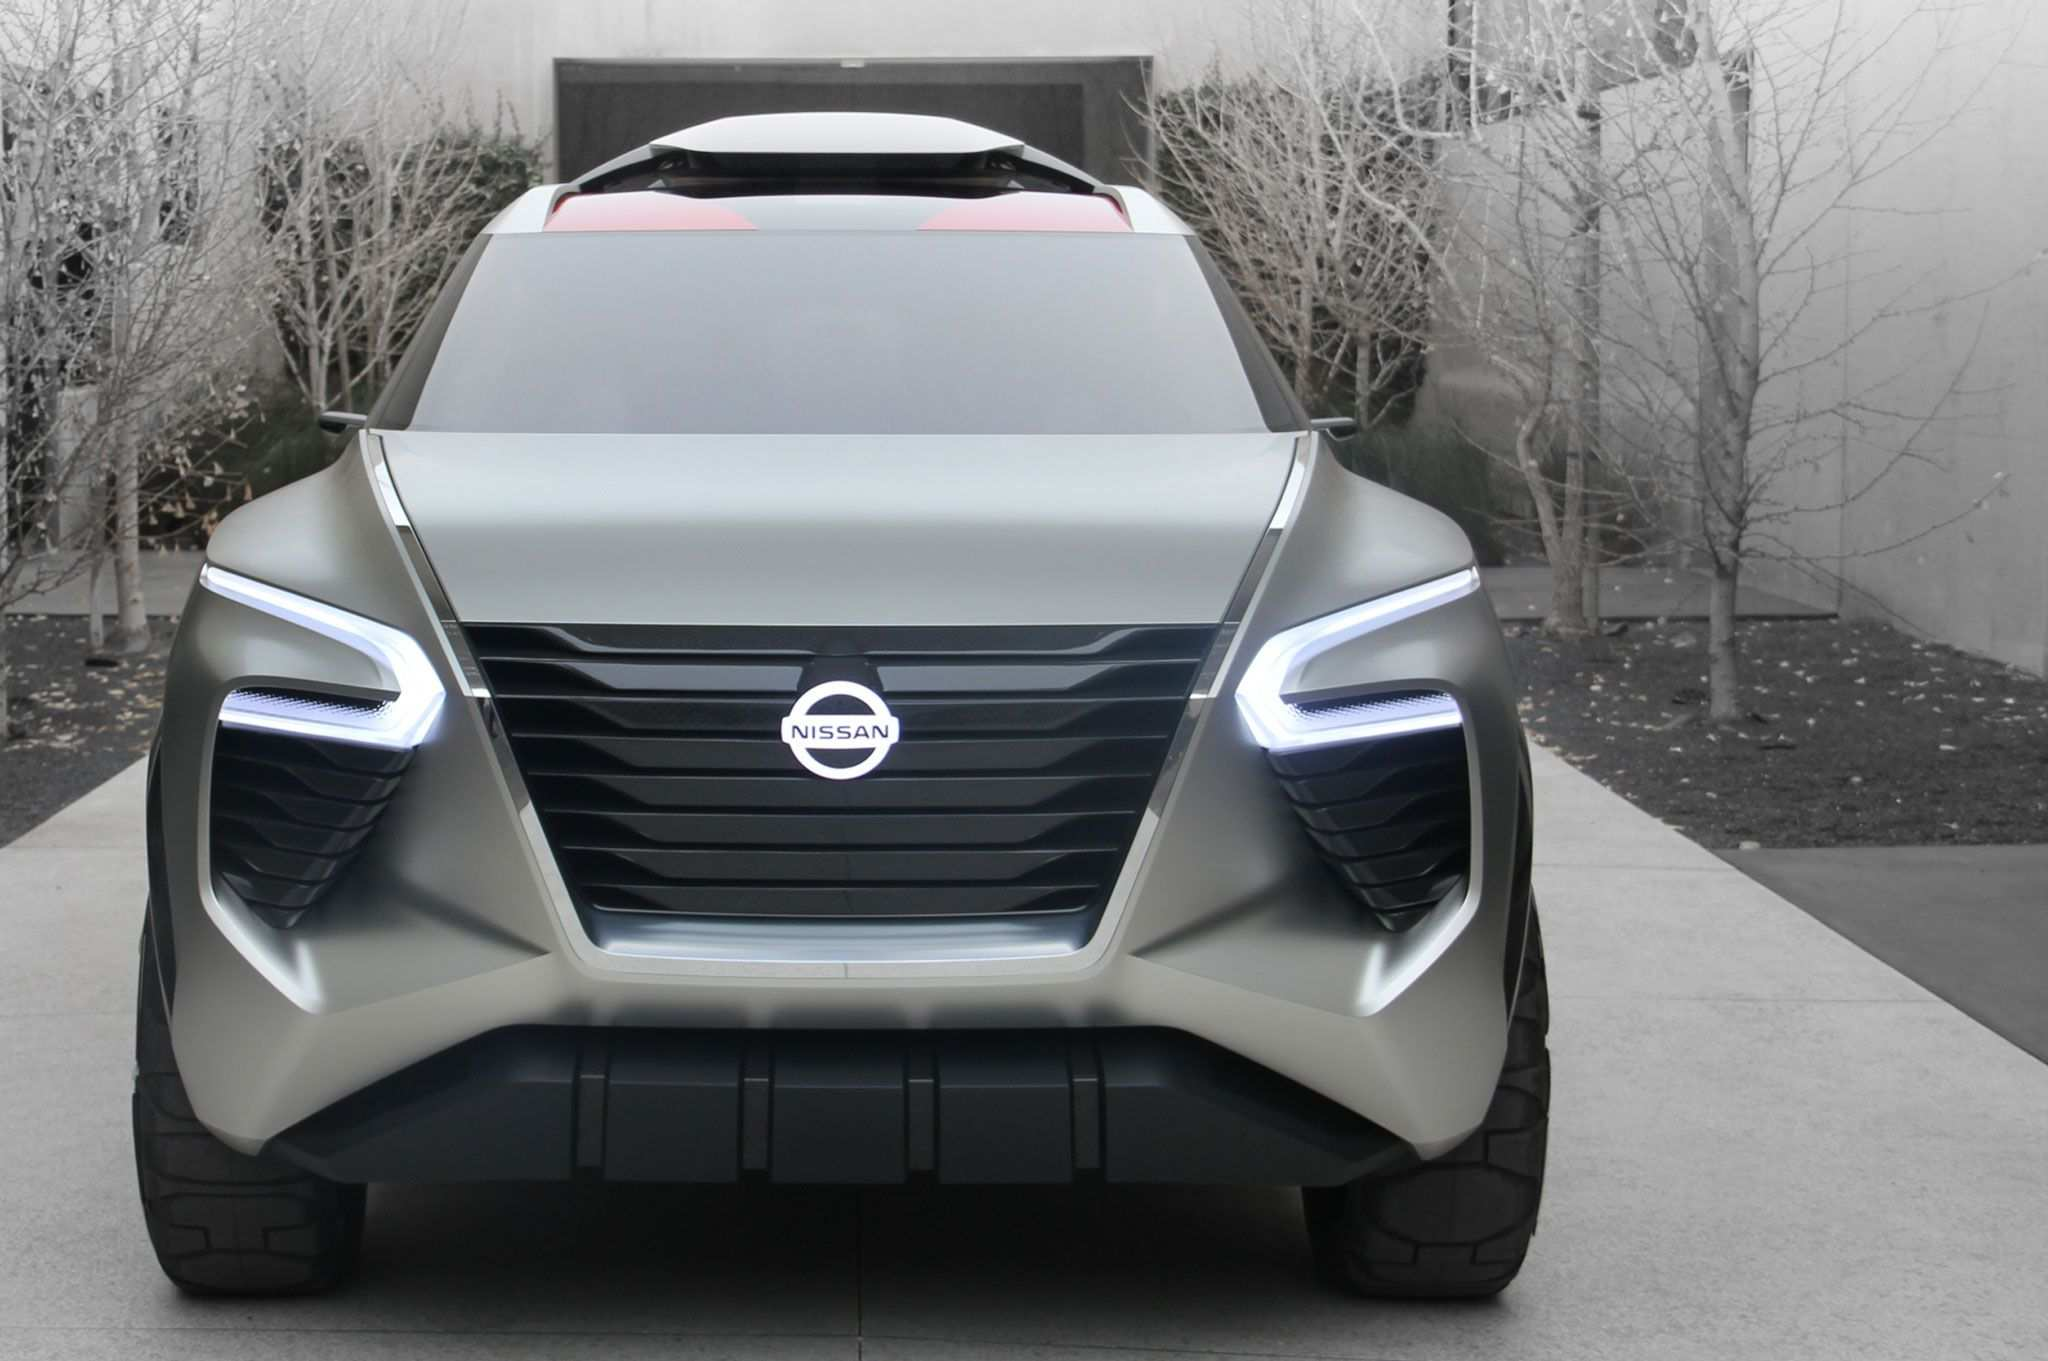 76 Concept of 2020 Nissan Rogue New Concept for 2020 Nissan Rogue